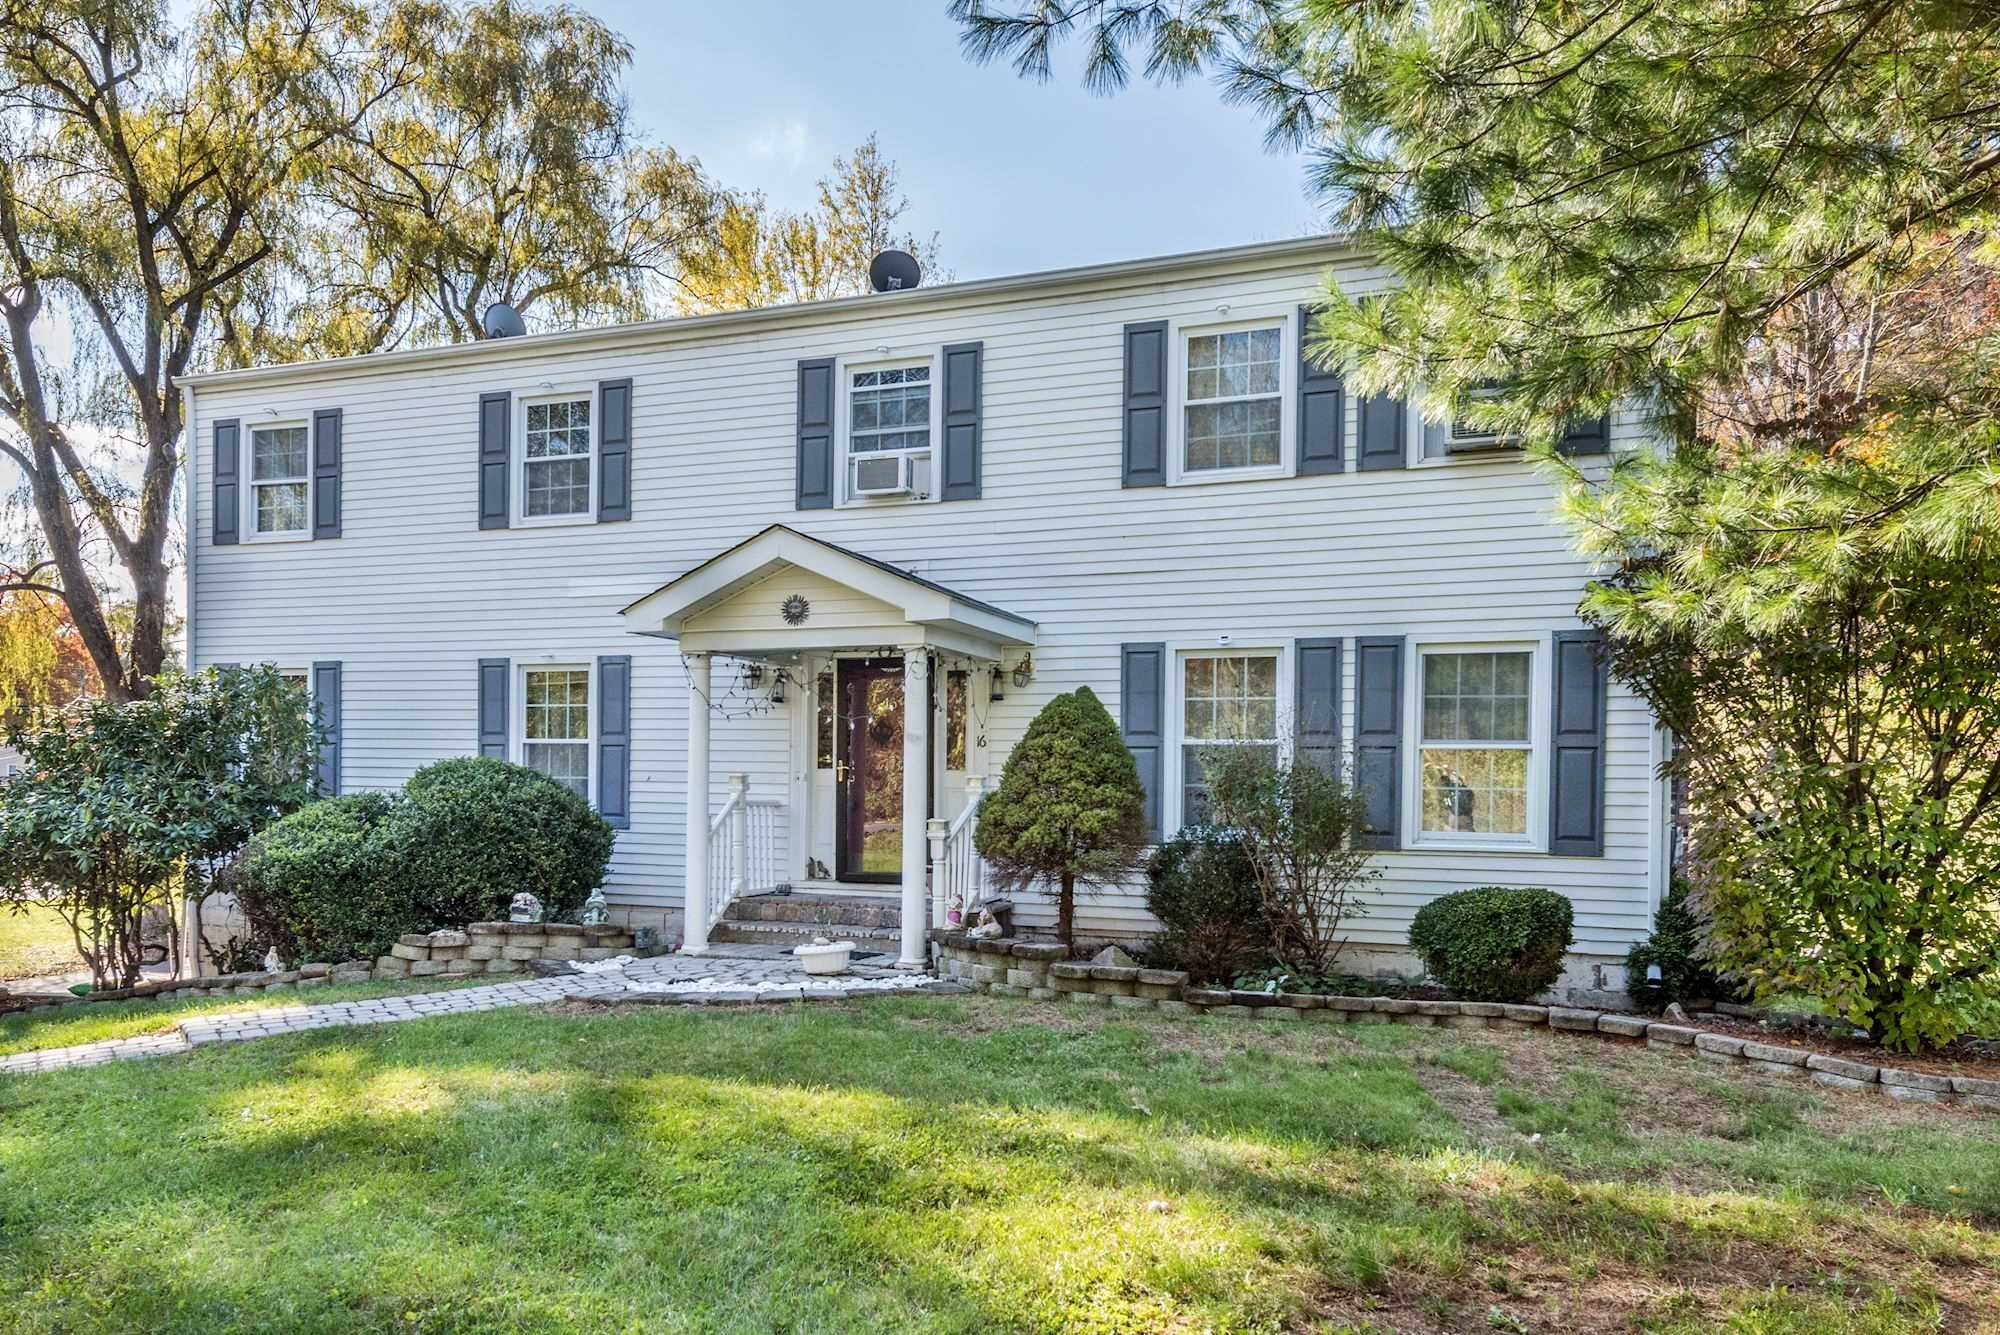 Single Family Home for Sale at 16 HAGAN Drive 16 HAGAN Drive Poughkeepsie, New York 12603 United States